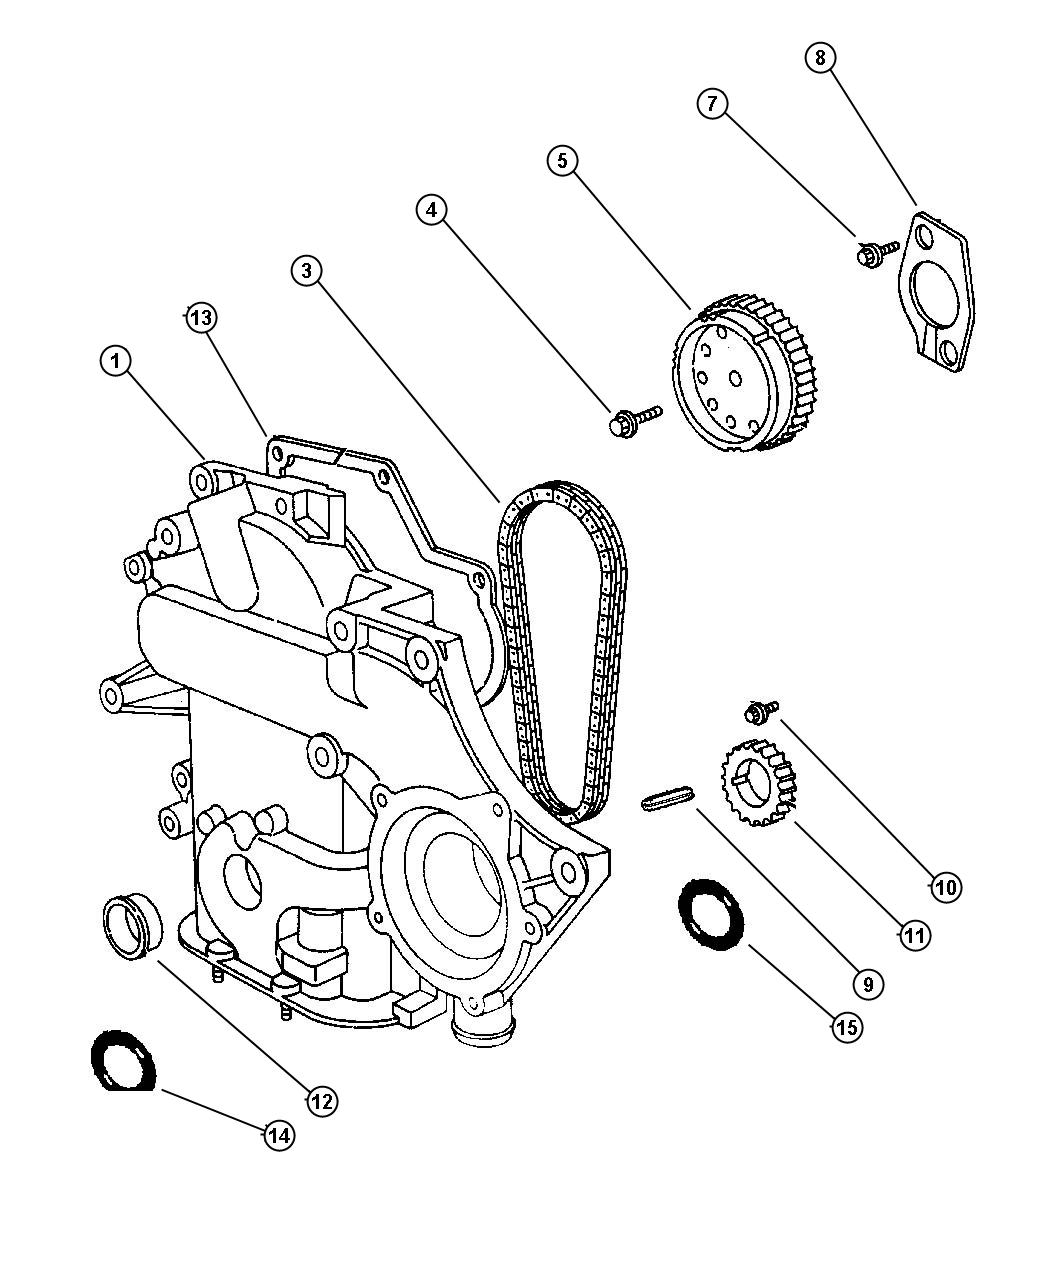 Plymouth Voyager Timing Chain and Cover 3.8L EGH Engine.